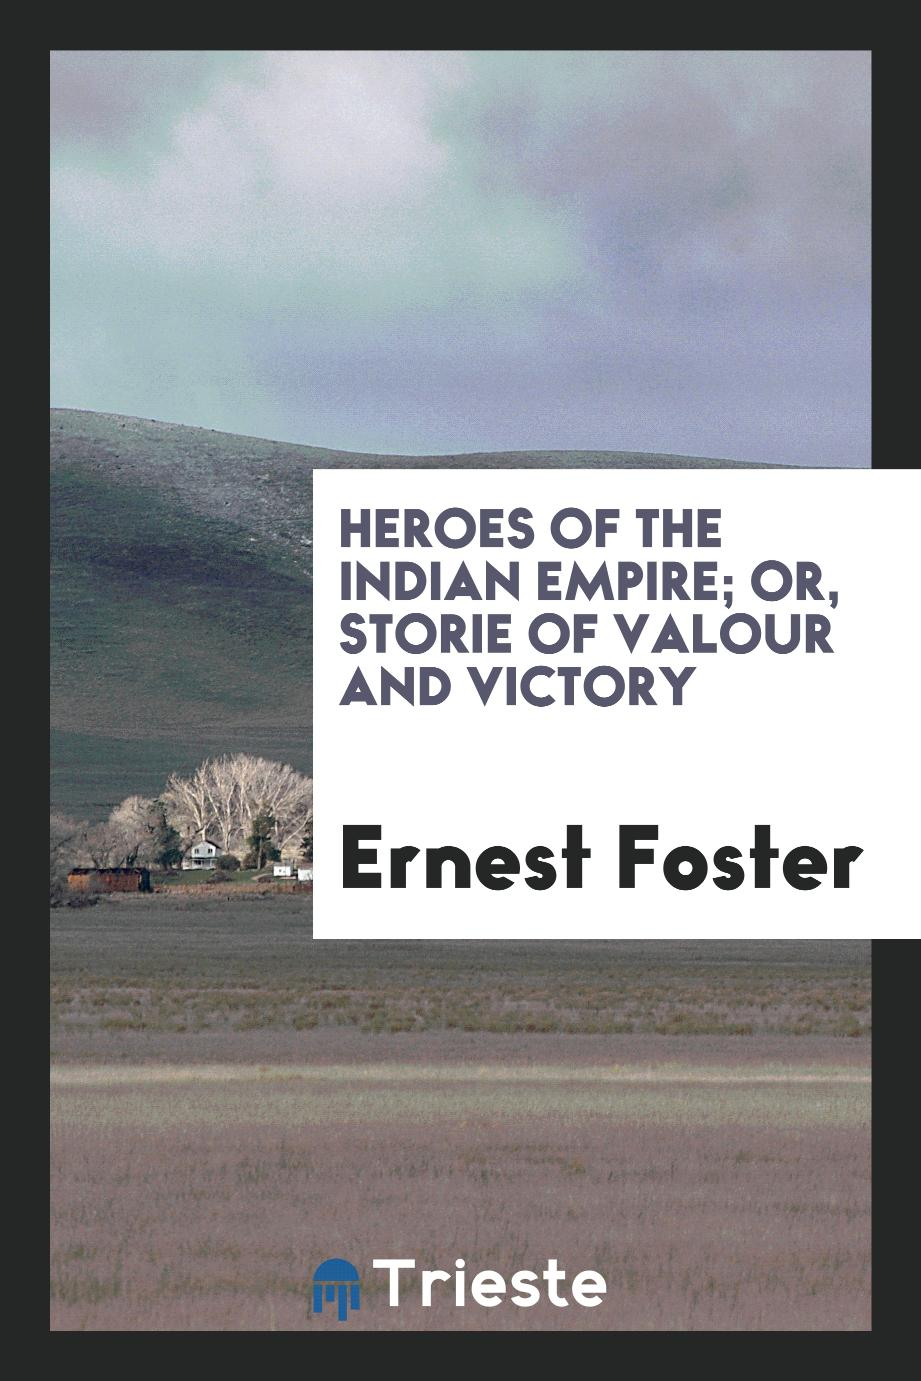 Heroes of the Indian empire; or, storie of valour and victory